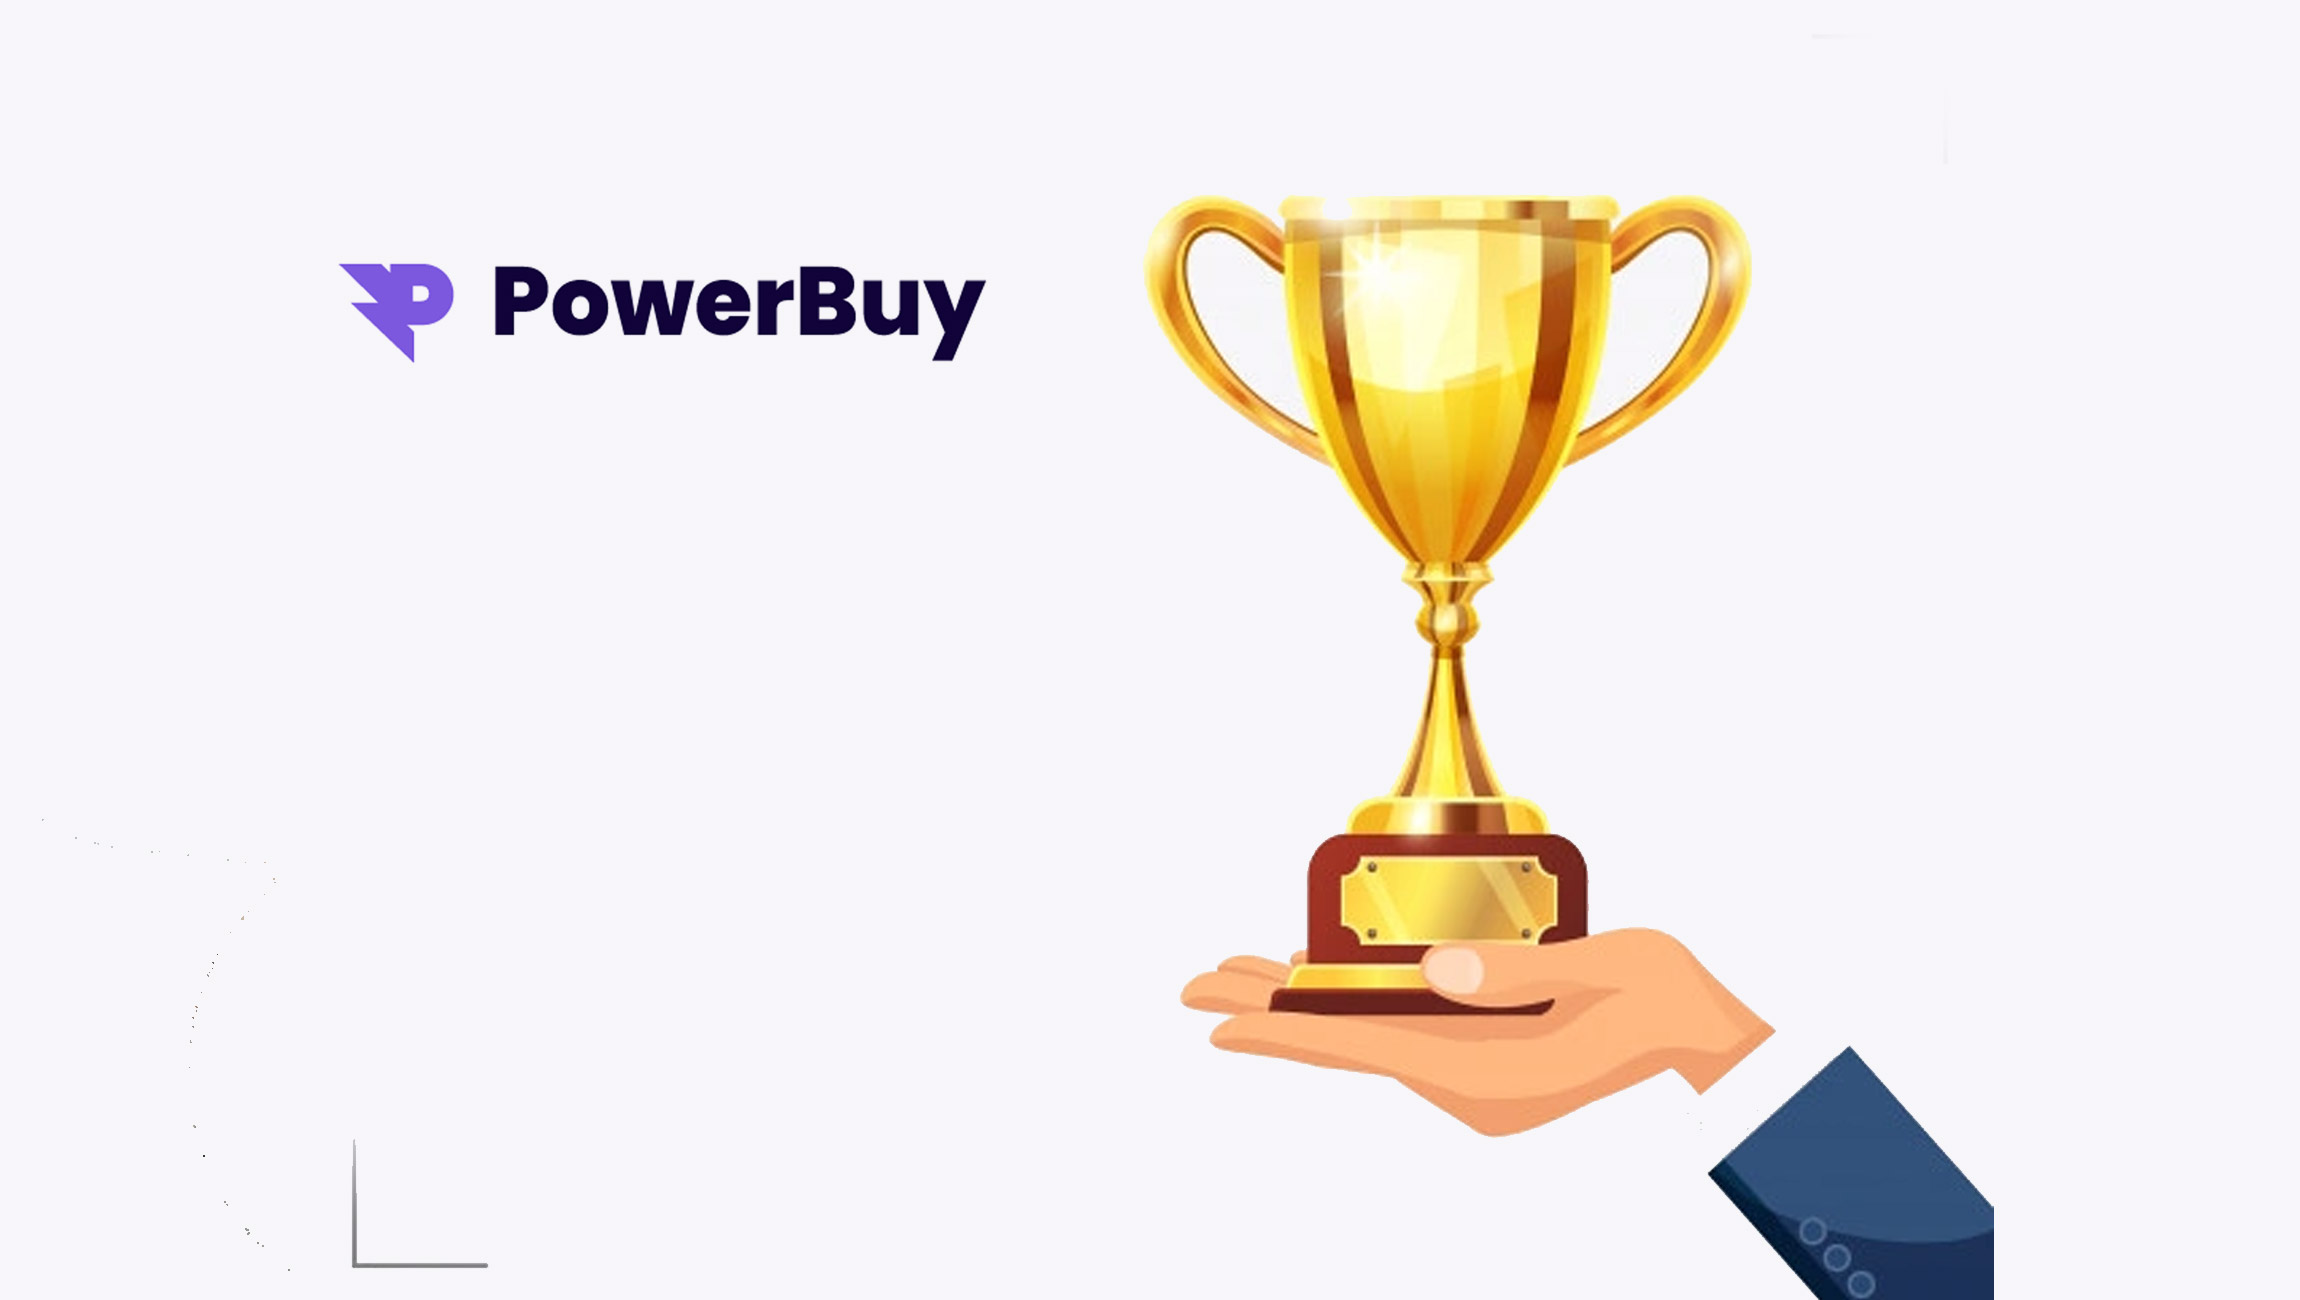 PowerBuy Awarded US Patent 10,929,873 for Their Group Buying and Social Ecommerce Gamification Concept, Acquires Two New Advisory Board Members